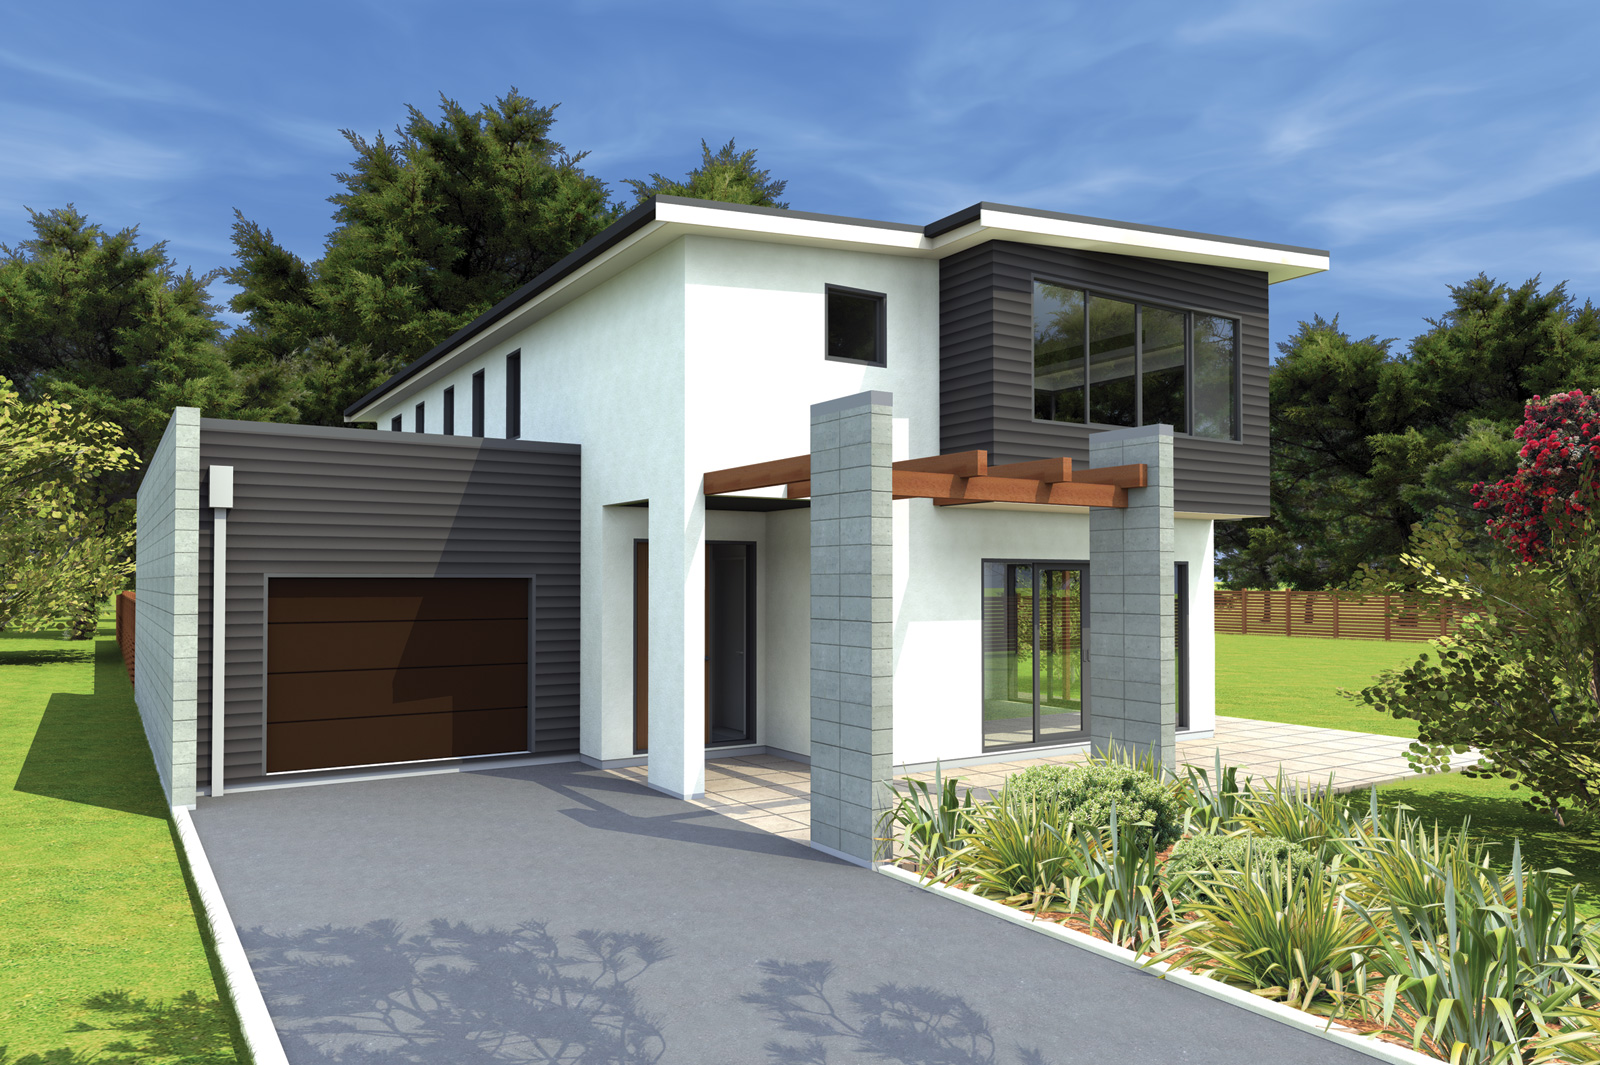 New home designs latest new modern homes designs new for New home designs pictures in pakistan